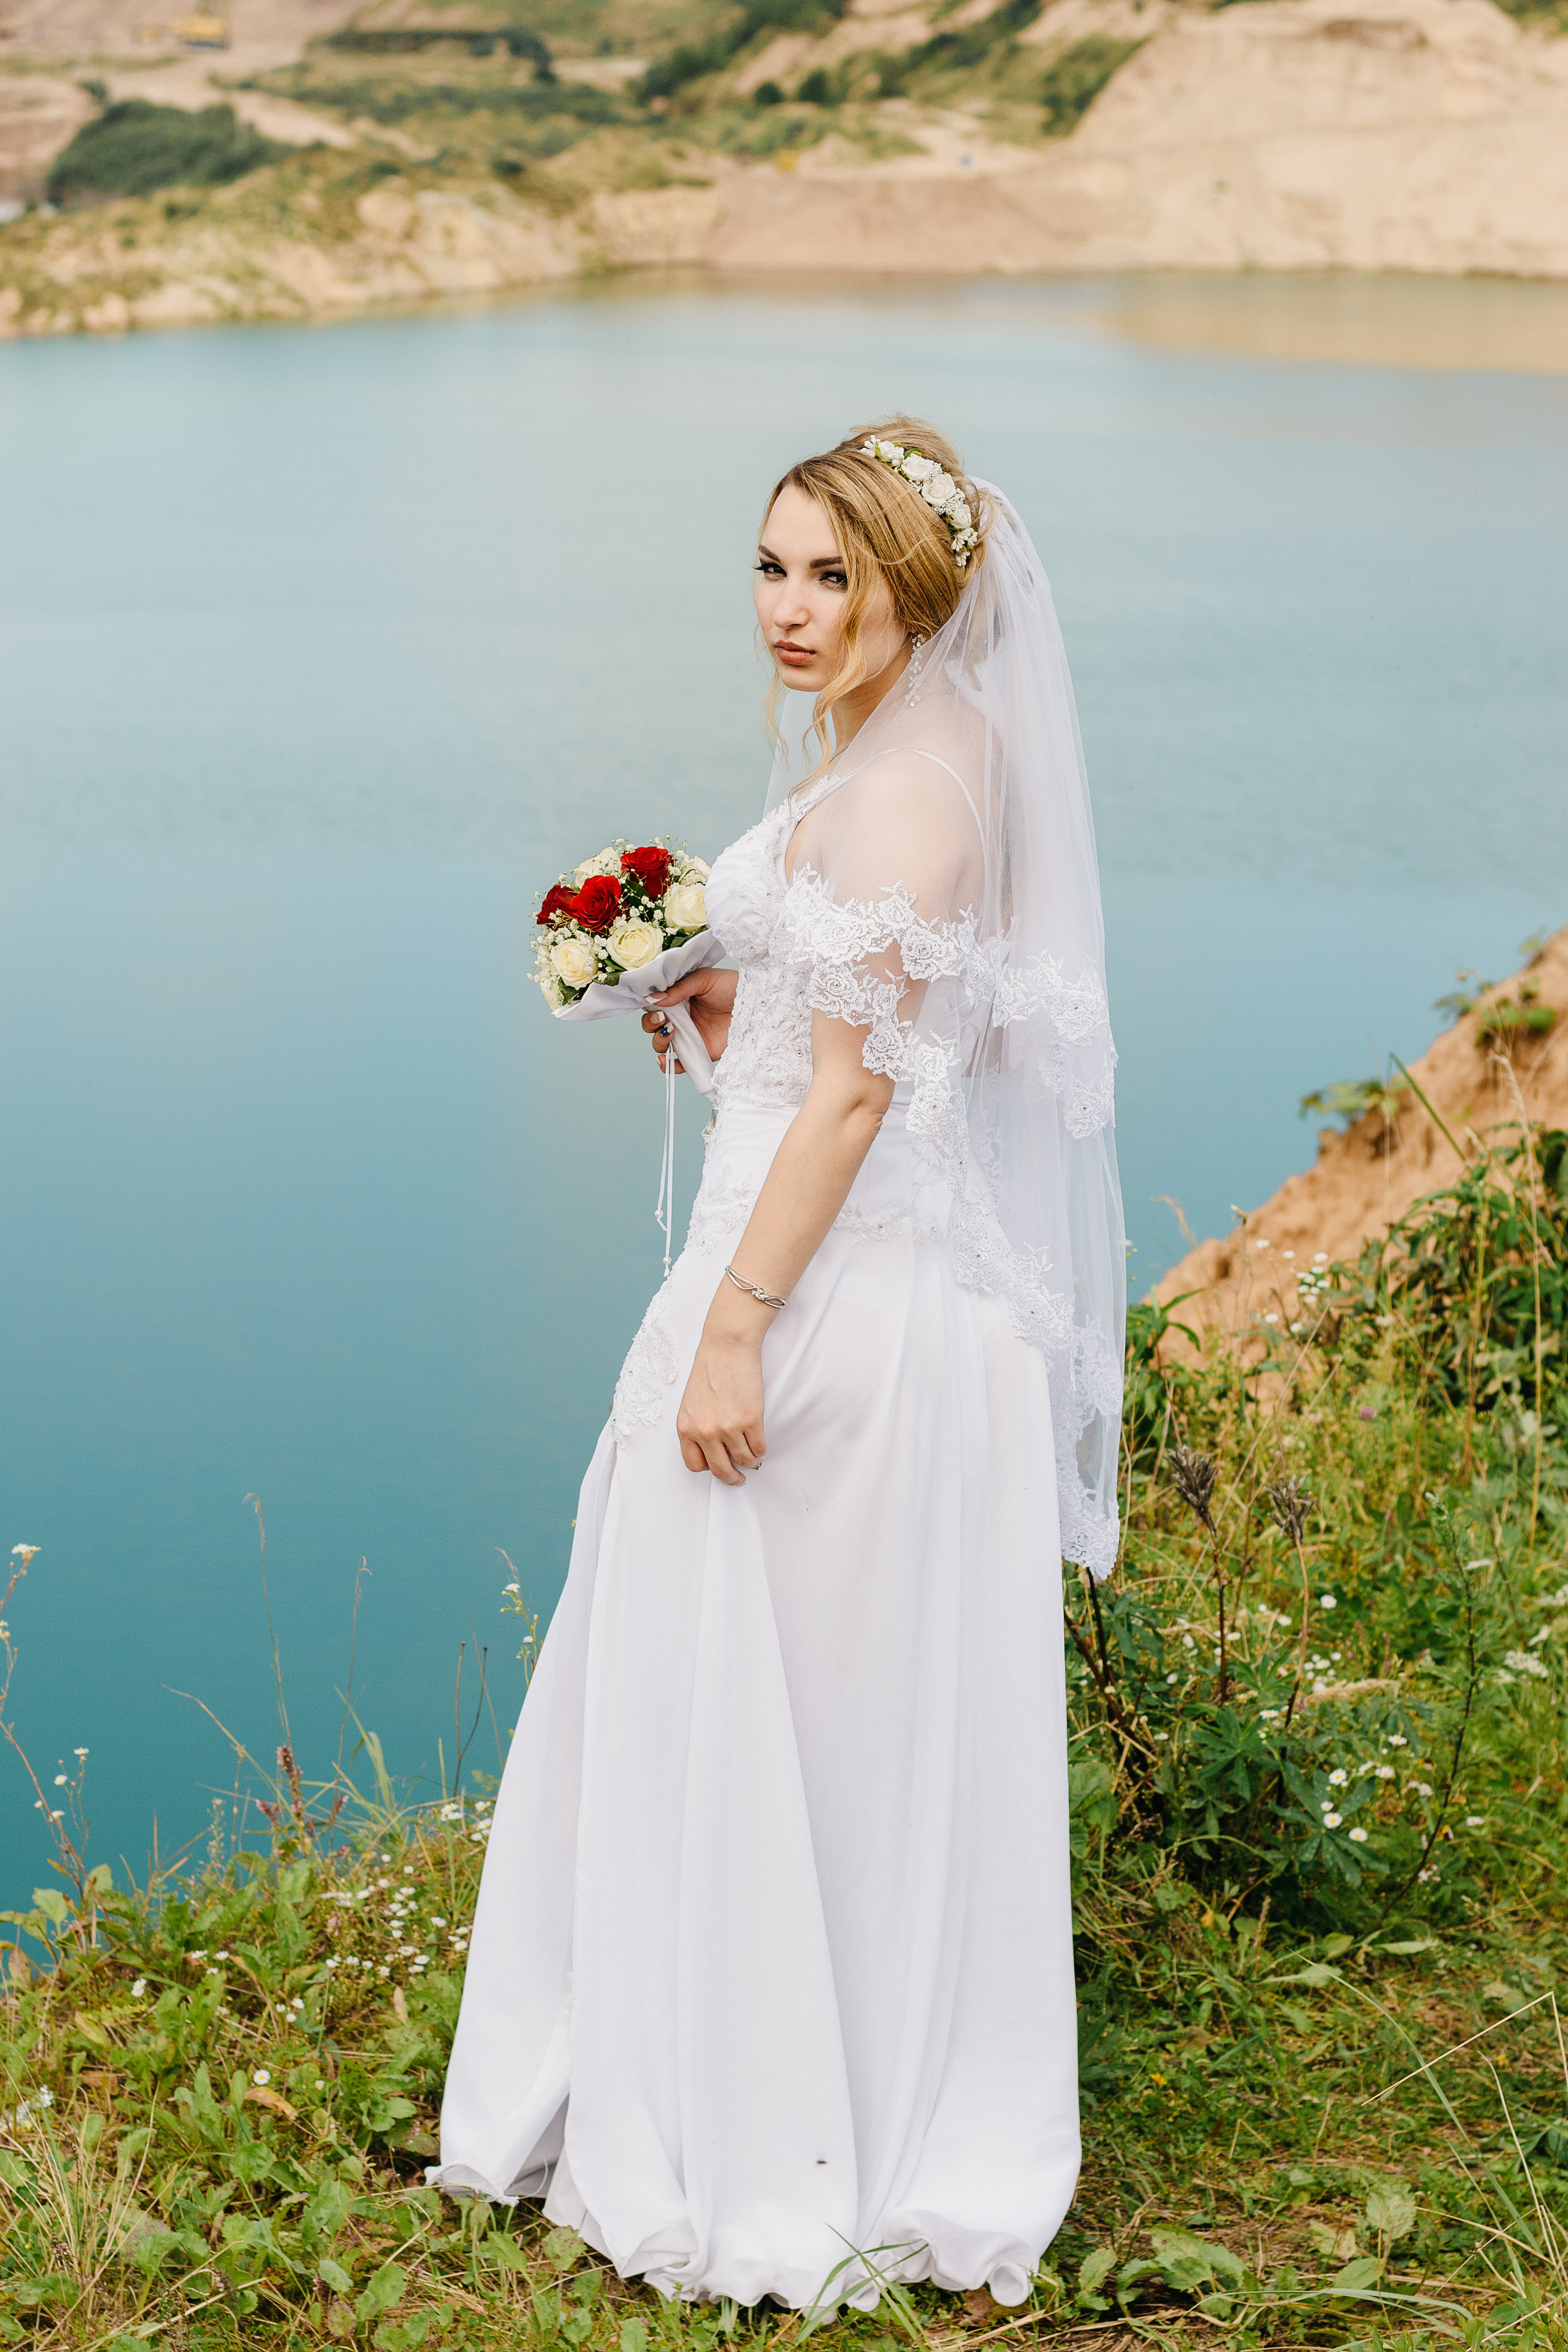 Woman in Wedding Gown Holding Bouquet in Front of Lake